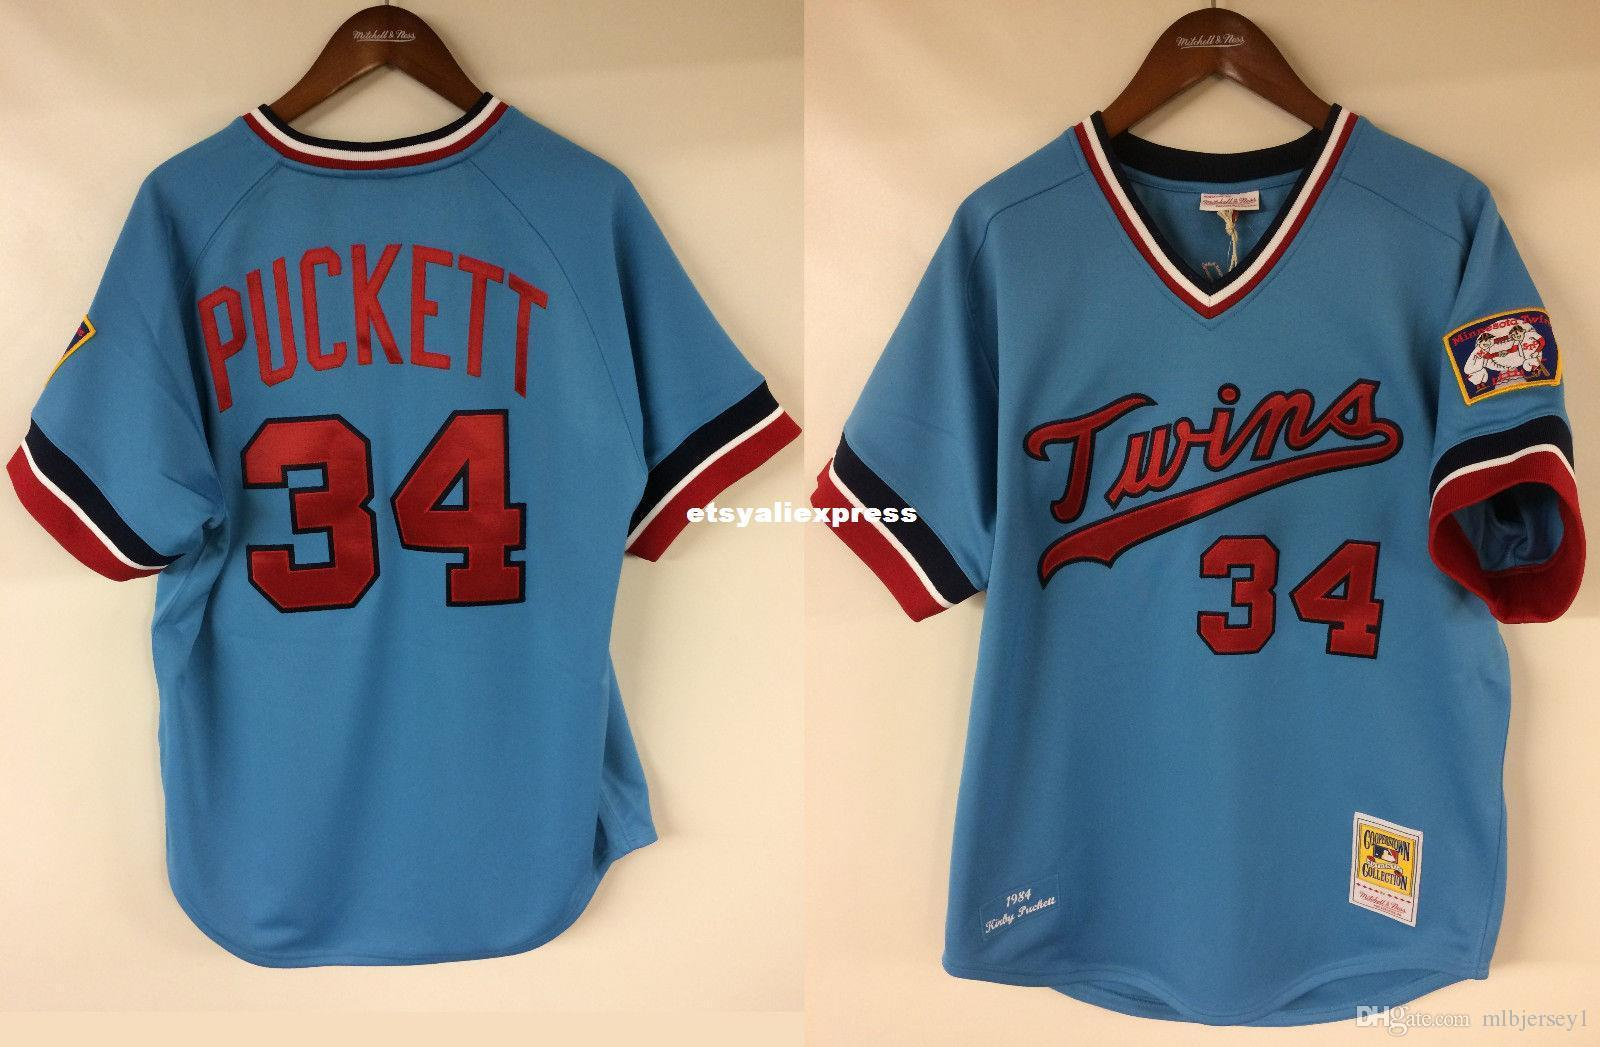 a5306bee Cheap Kirby Puckett #34 Minnesota Mitchell & Ness 1984 Rookie Jersey Top  Mens Stitched Baseball Jerseys Cheap Puckett Jerseys Kirby Puckett Jersey  Puckett ...